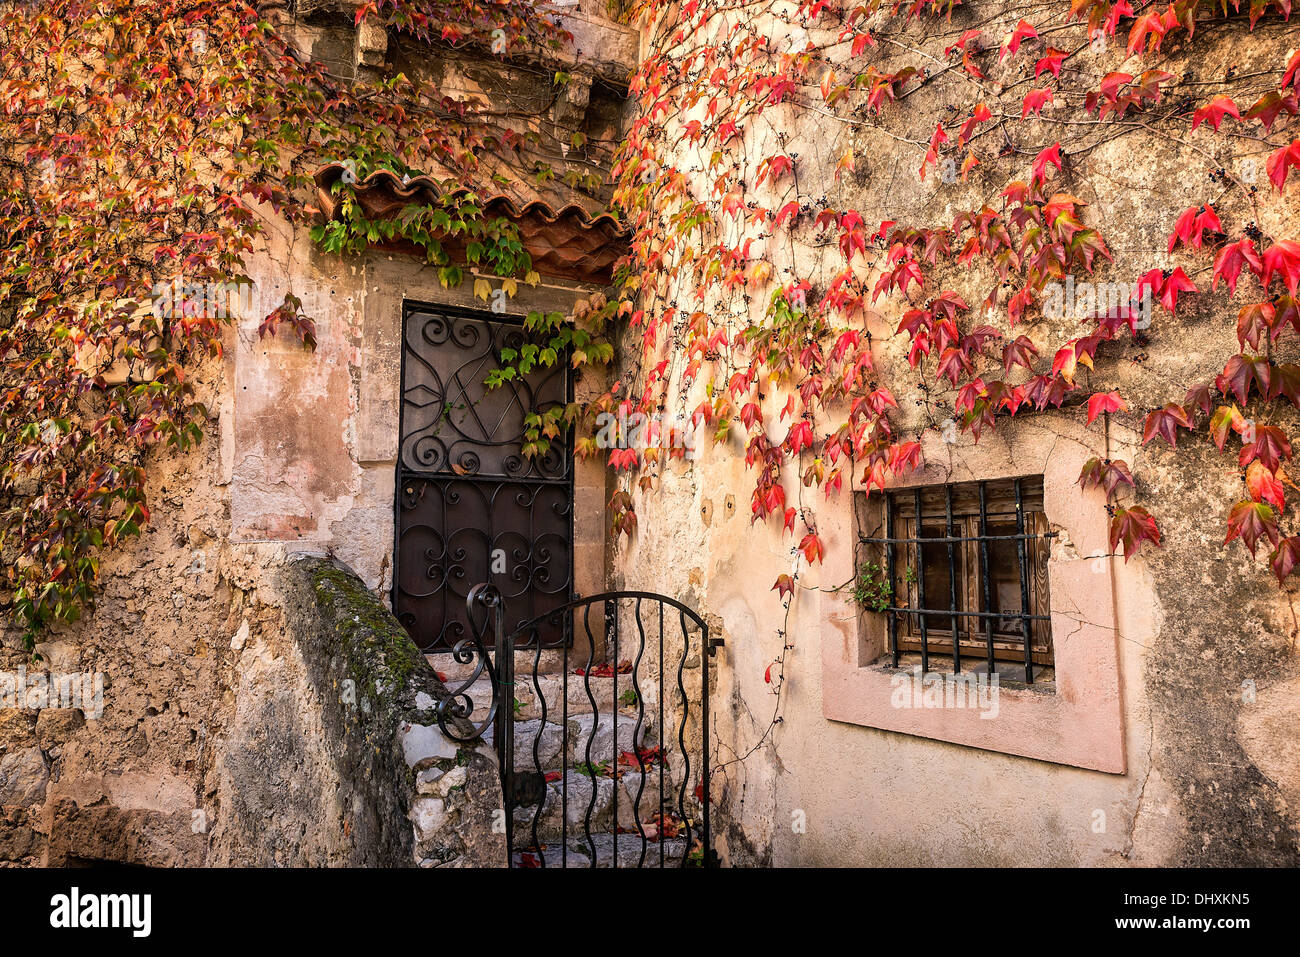 Charming rustic facade and ivy, Eza, Cote d'Azur, France - Stock Image